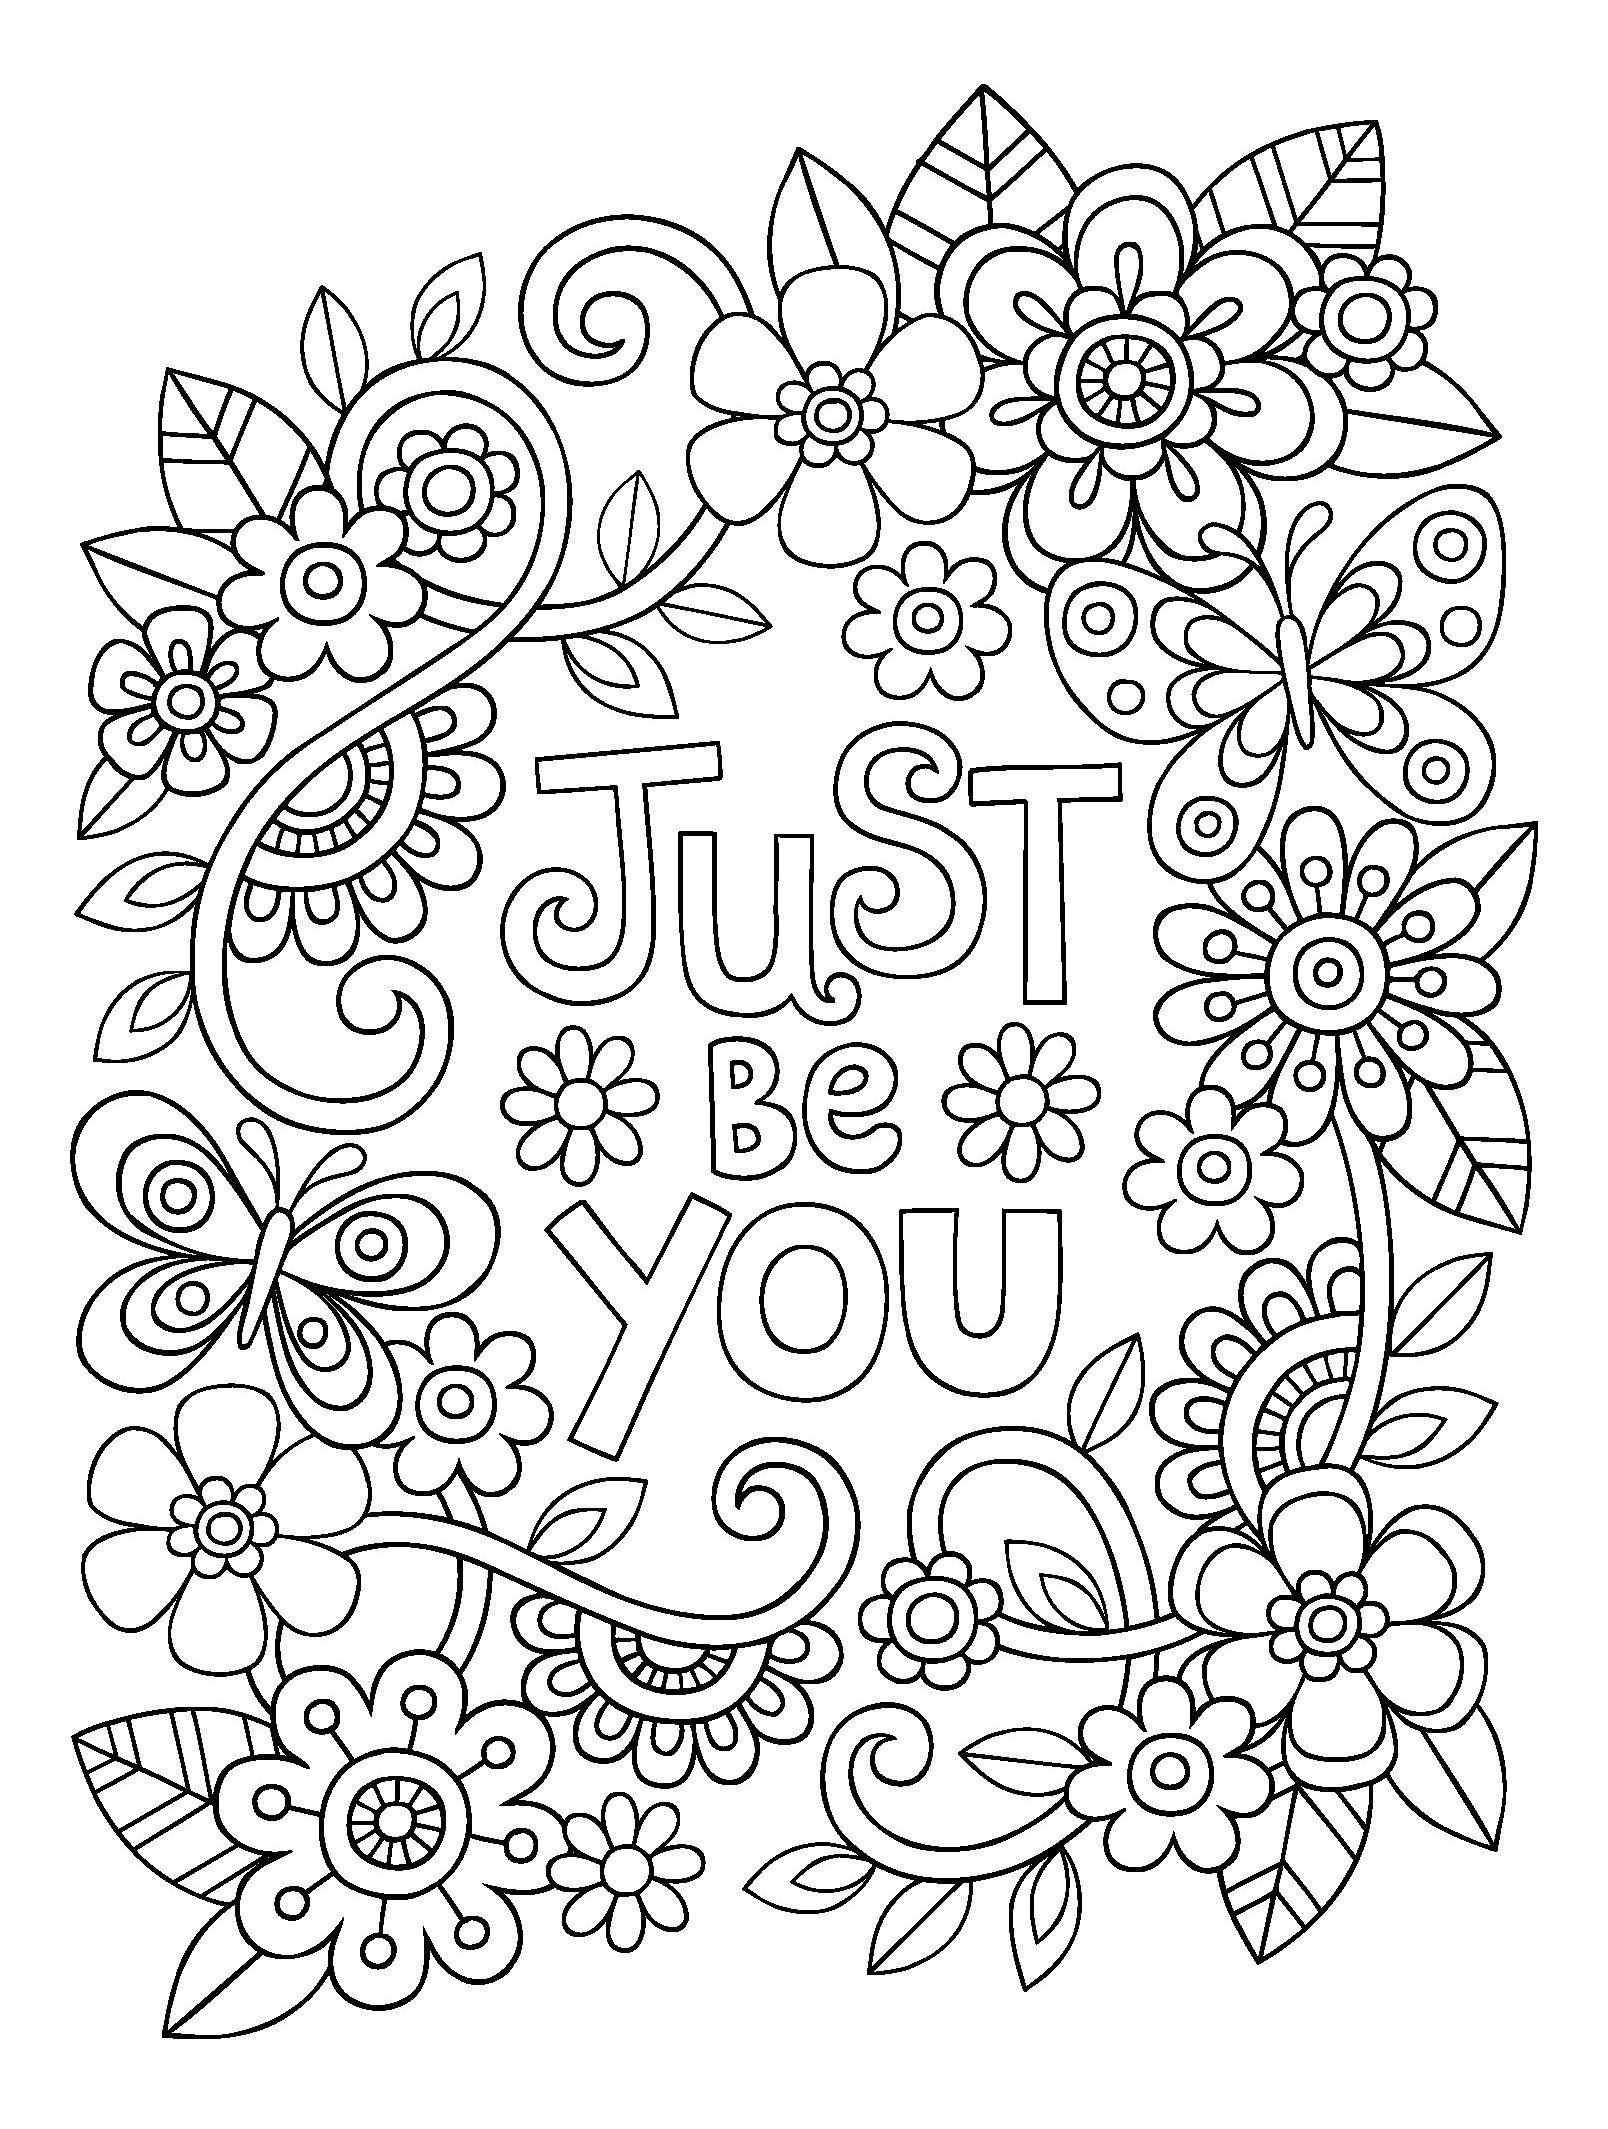 Related image | Color me Happy | Pinterest | Notebook doodles, Adult ...